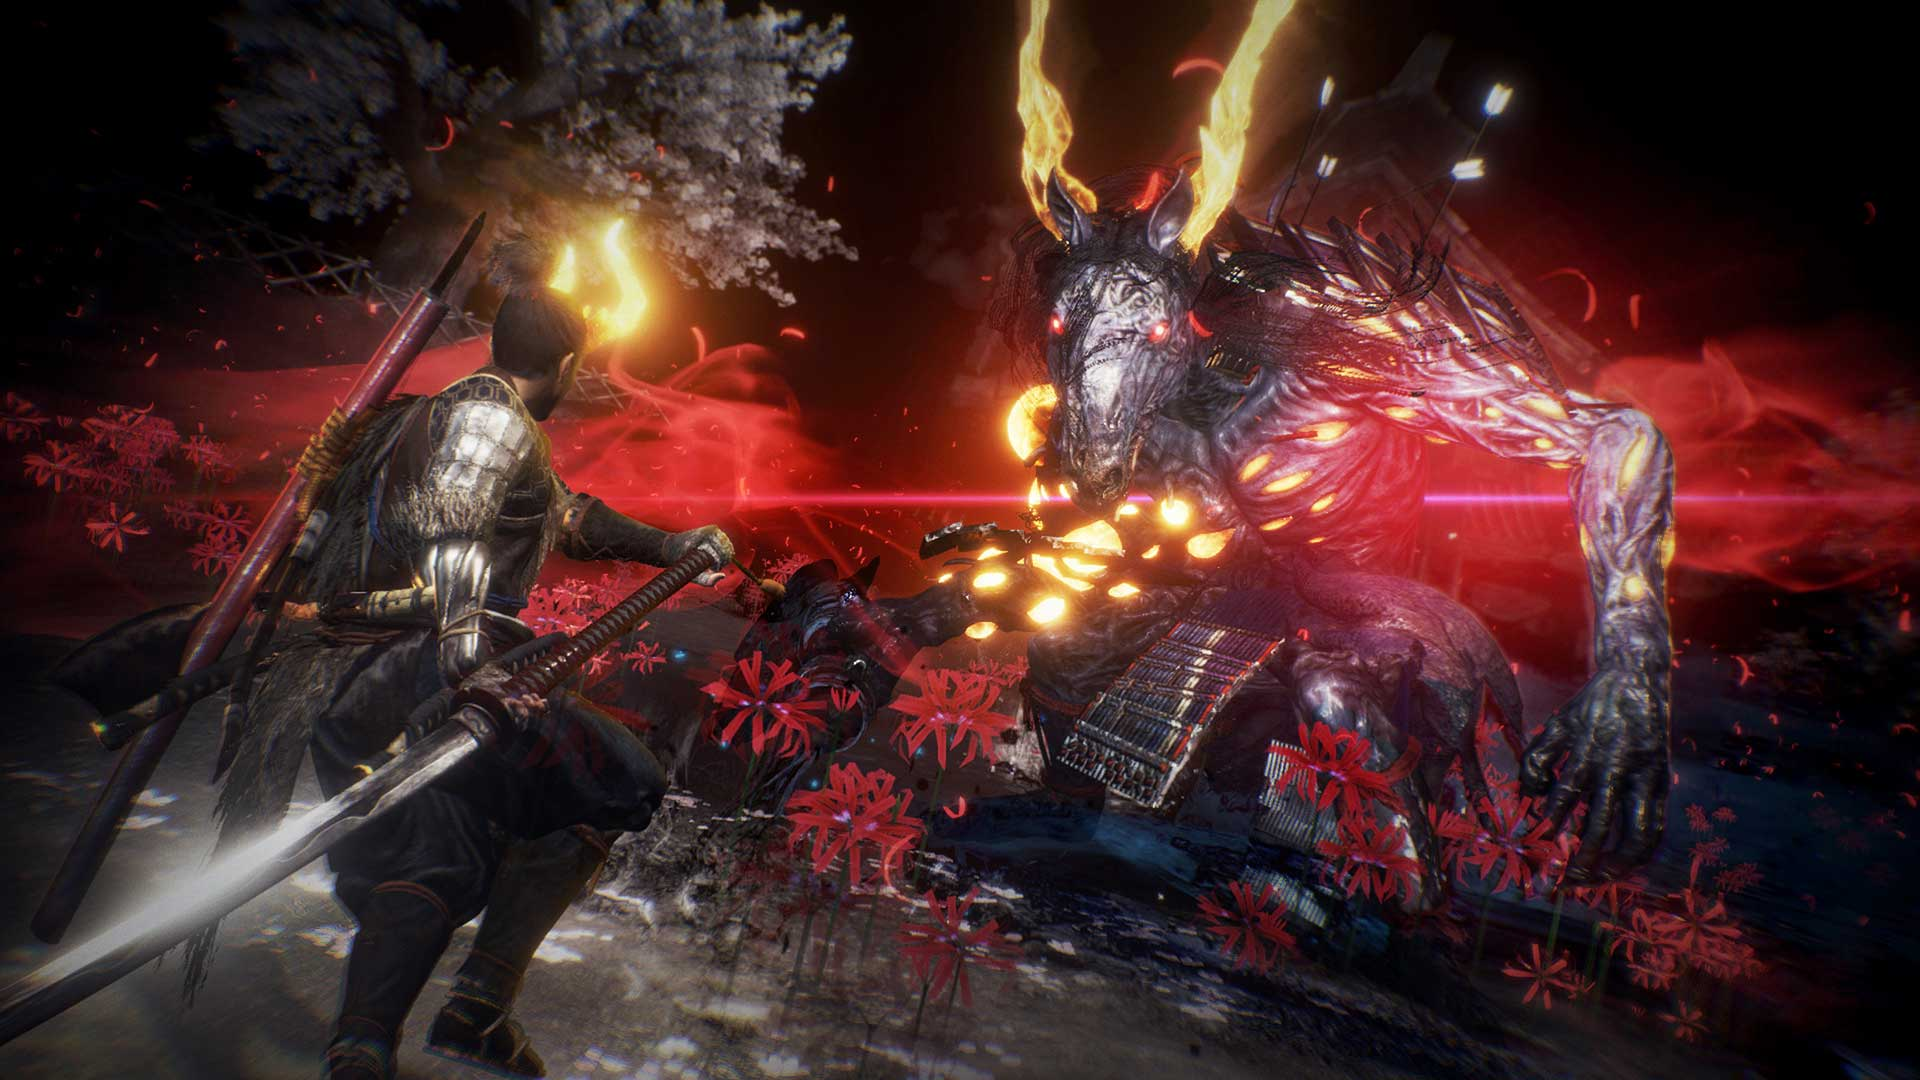 nioh 2 screenshot 25 ps4 us 10sep19 babt